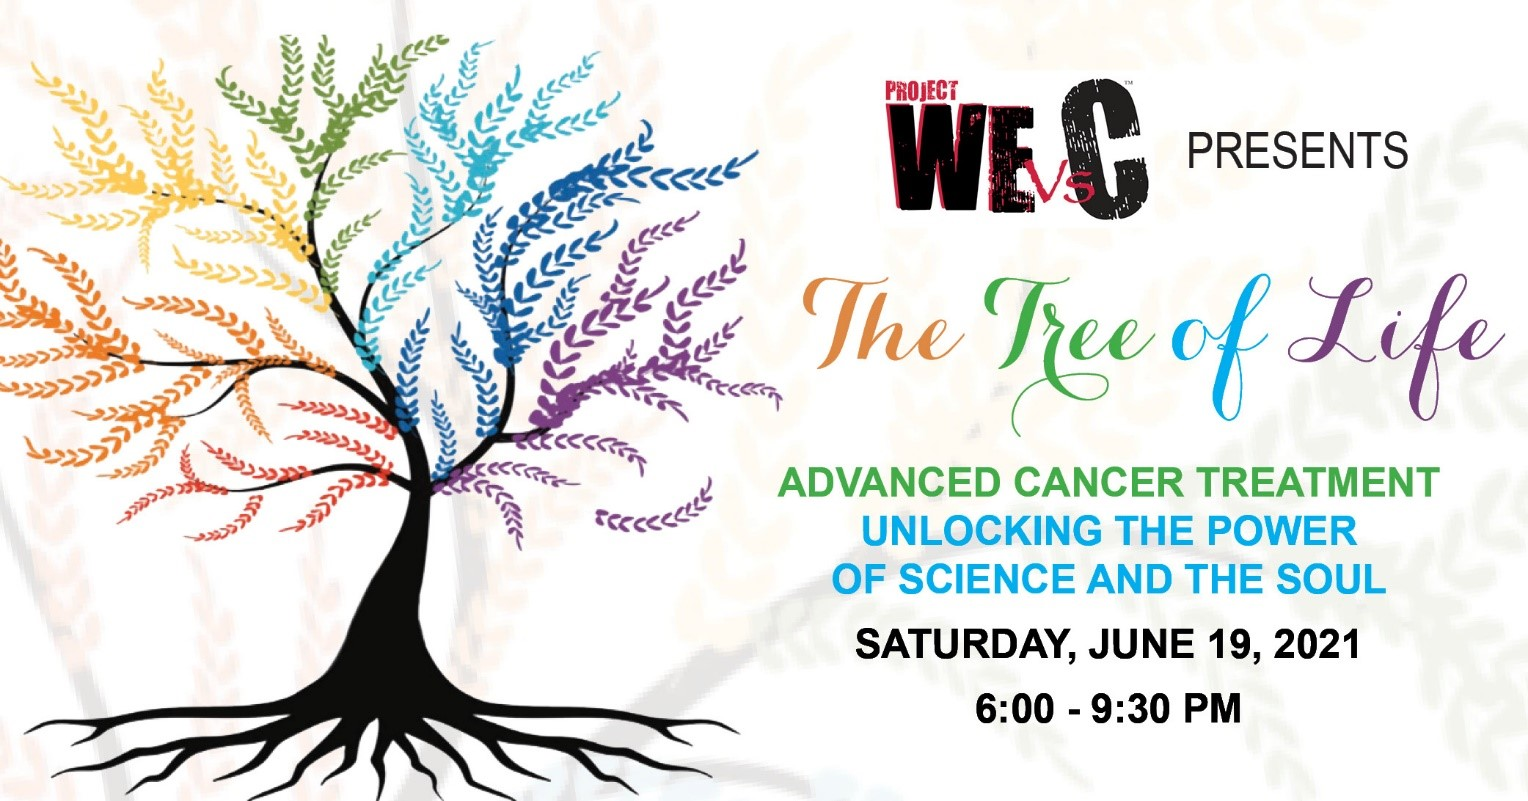 """RWJUH Hamilton's We vs. C (TM) to Host """"Tree of Life"""" Fundraiser to Benefit the Holistic Program at the Cancer Center"""